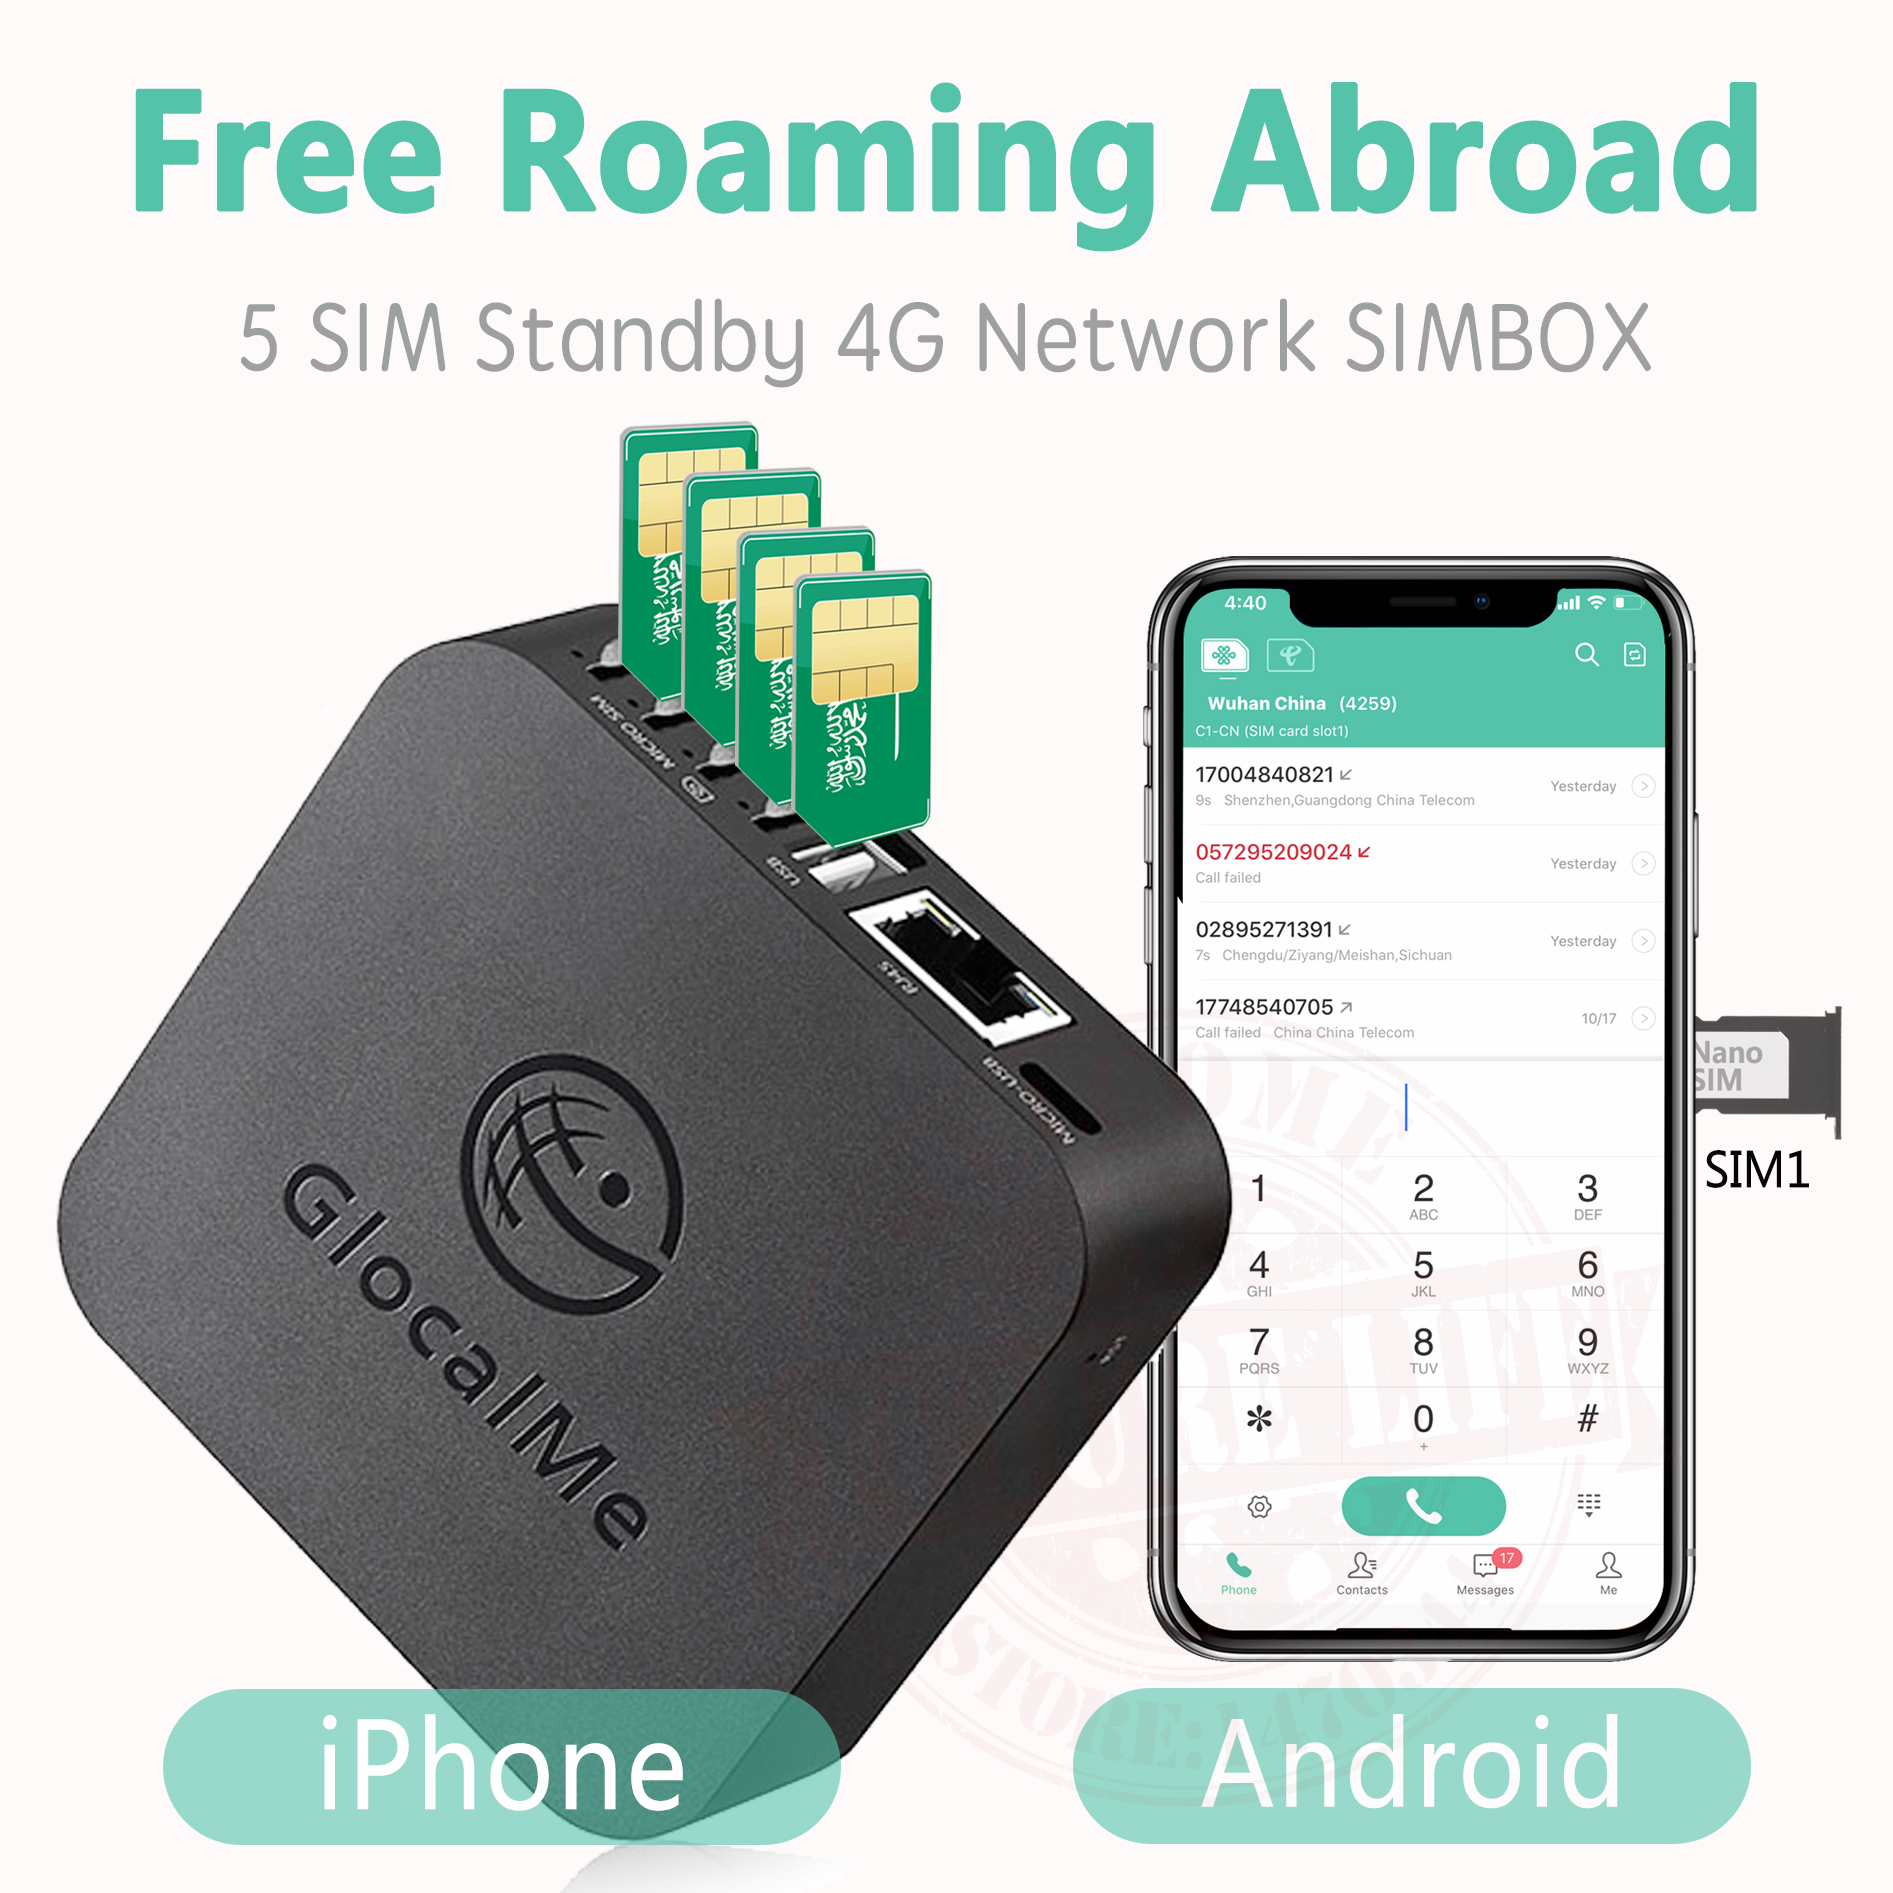 Glocalme Call Multi SIM Dual Standby No Roaming Abroad 4G SIMBOX For IOS & Android ,No Need Carry ,WiFi / Data To Make Call &SMS